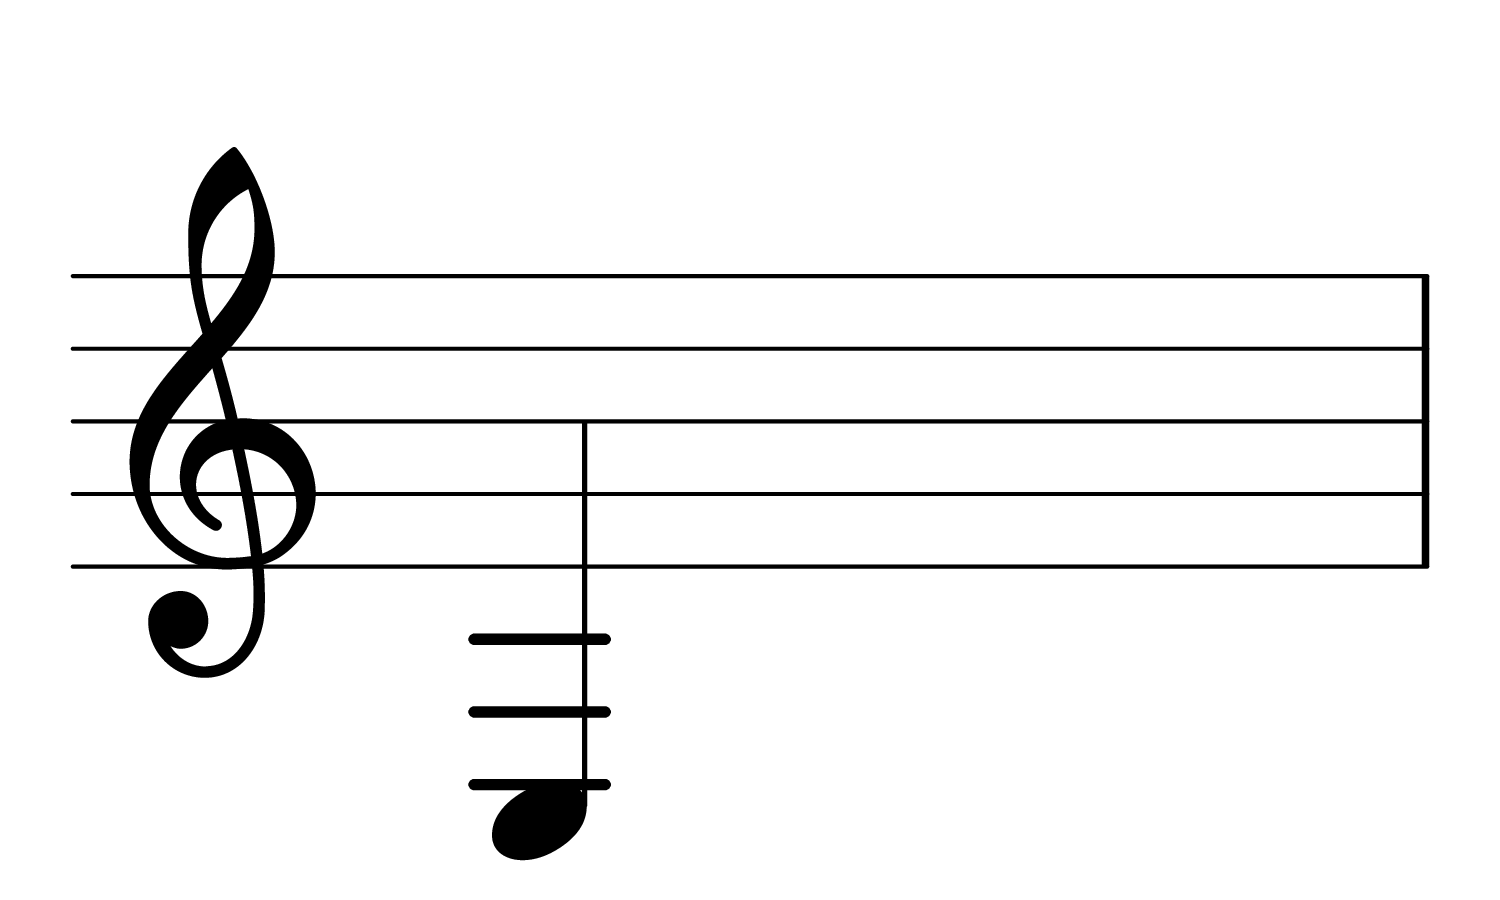 The note low E on the musical staff.